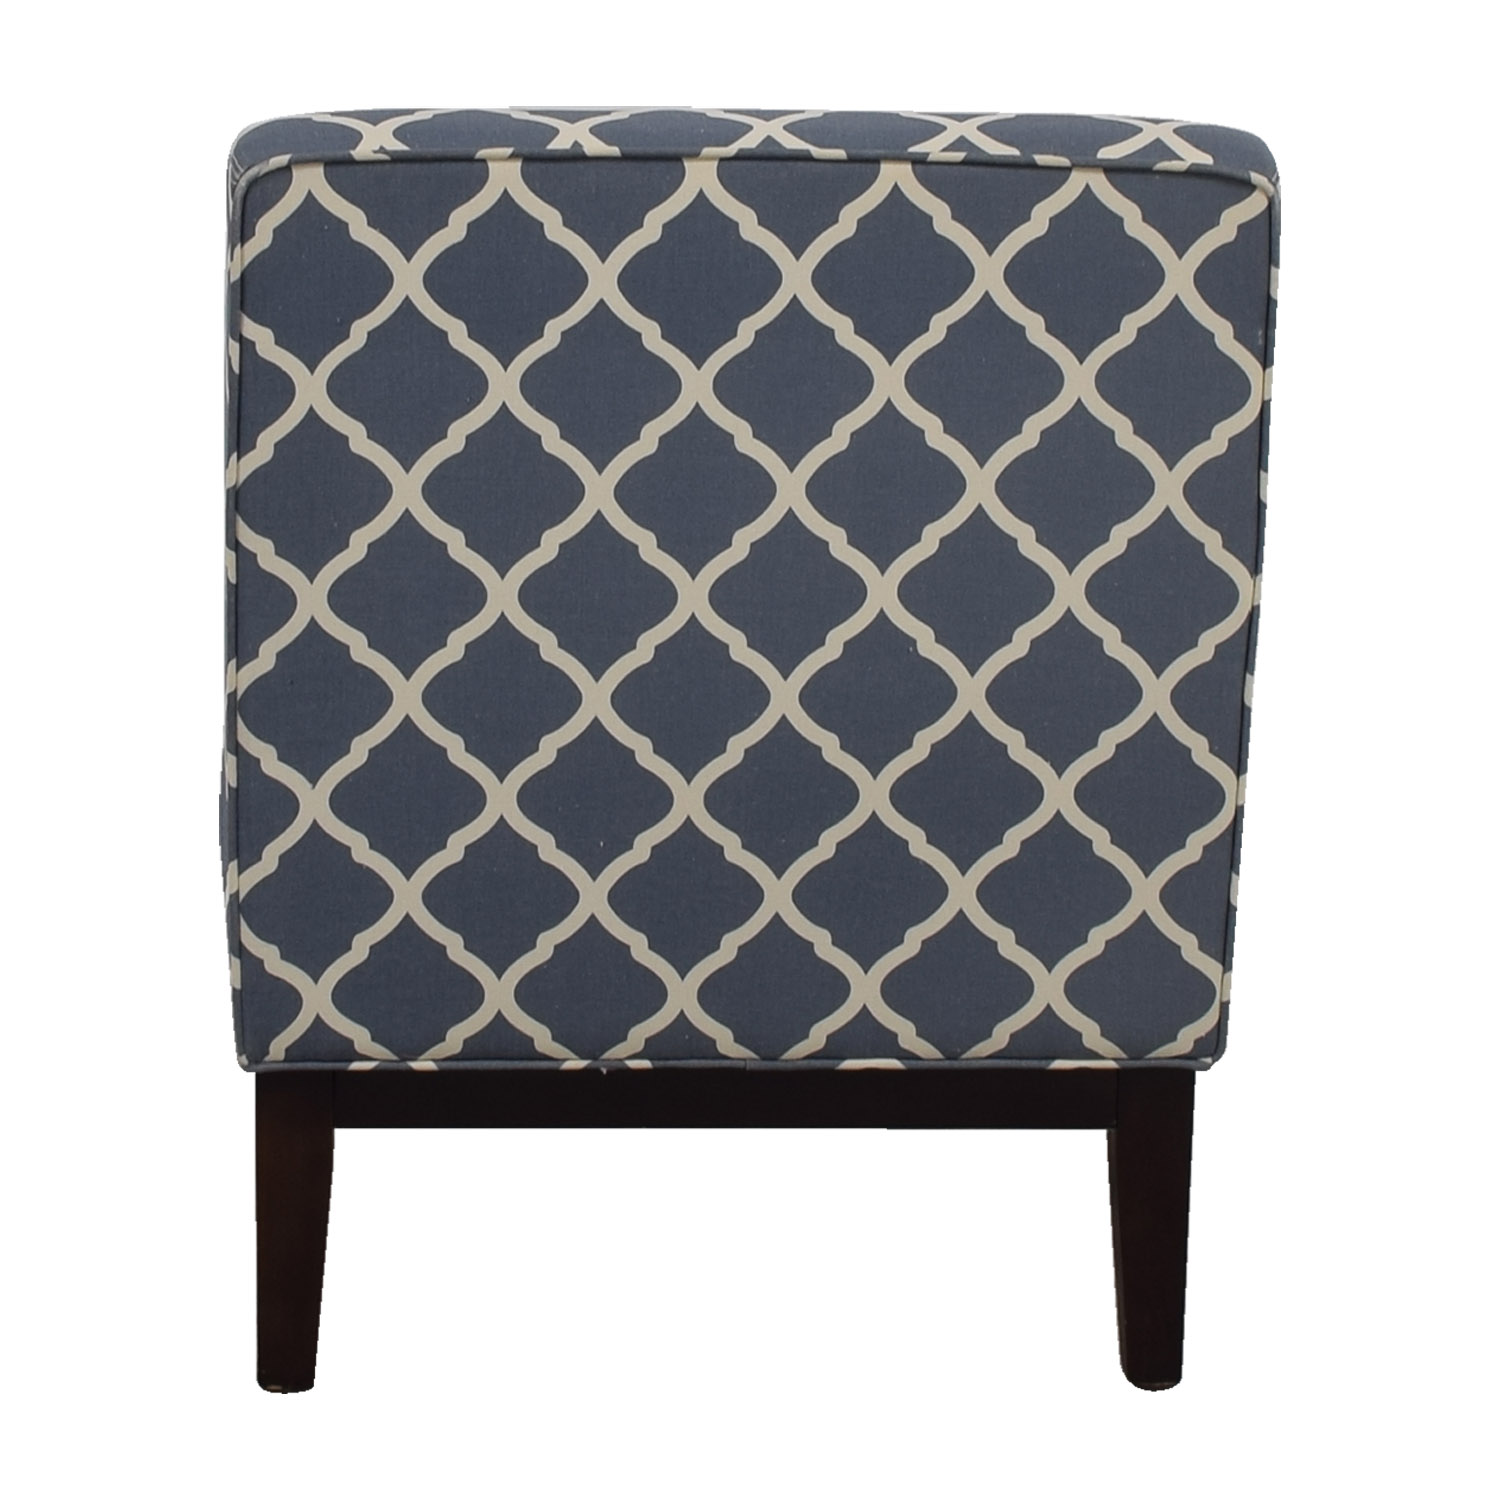 Joss and Main Joss and Main Blue and White Accent Chair nj